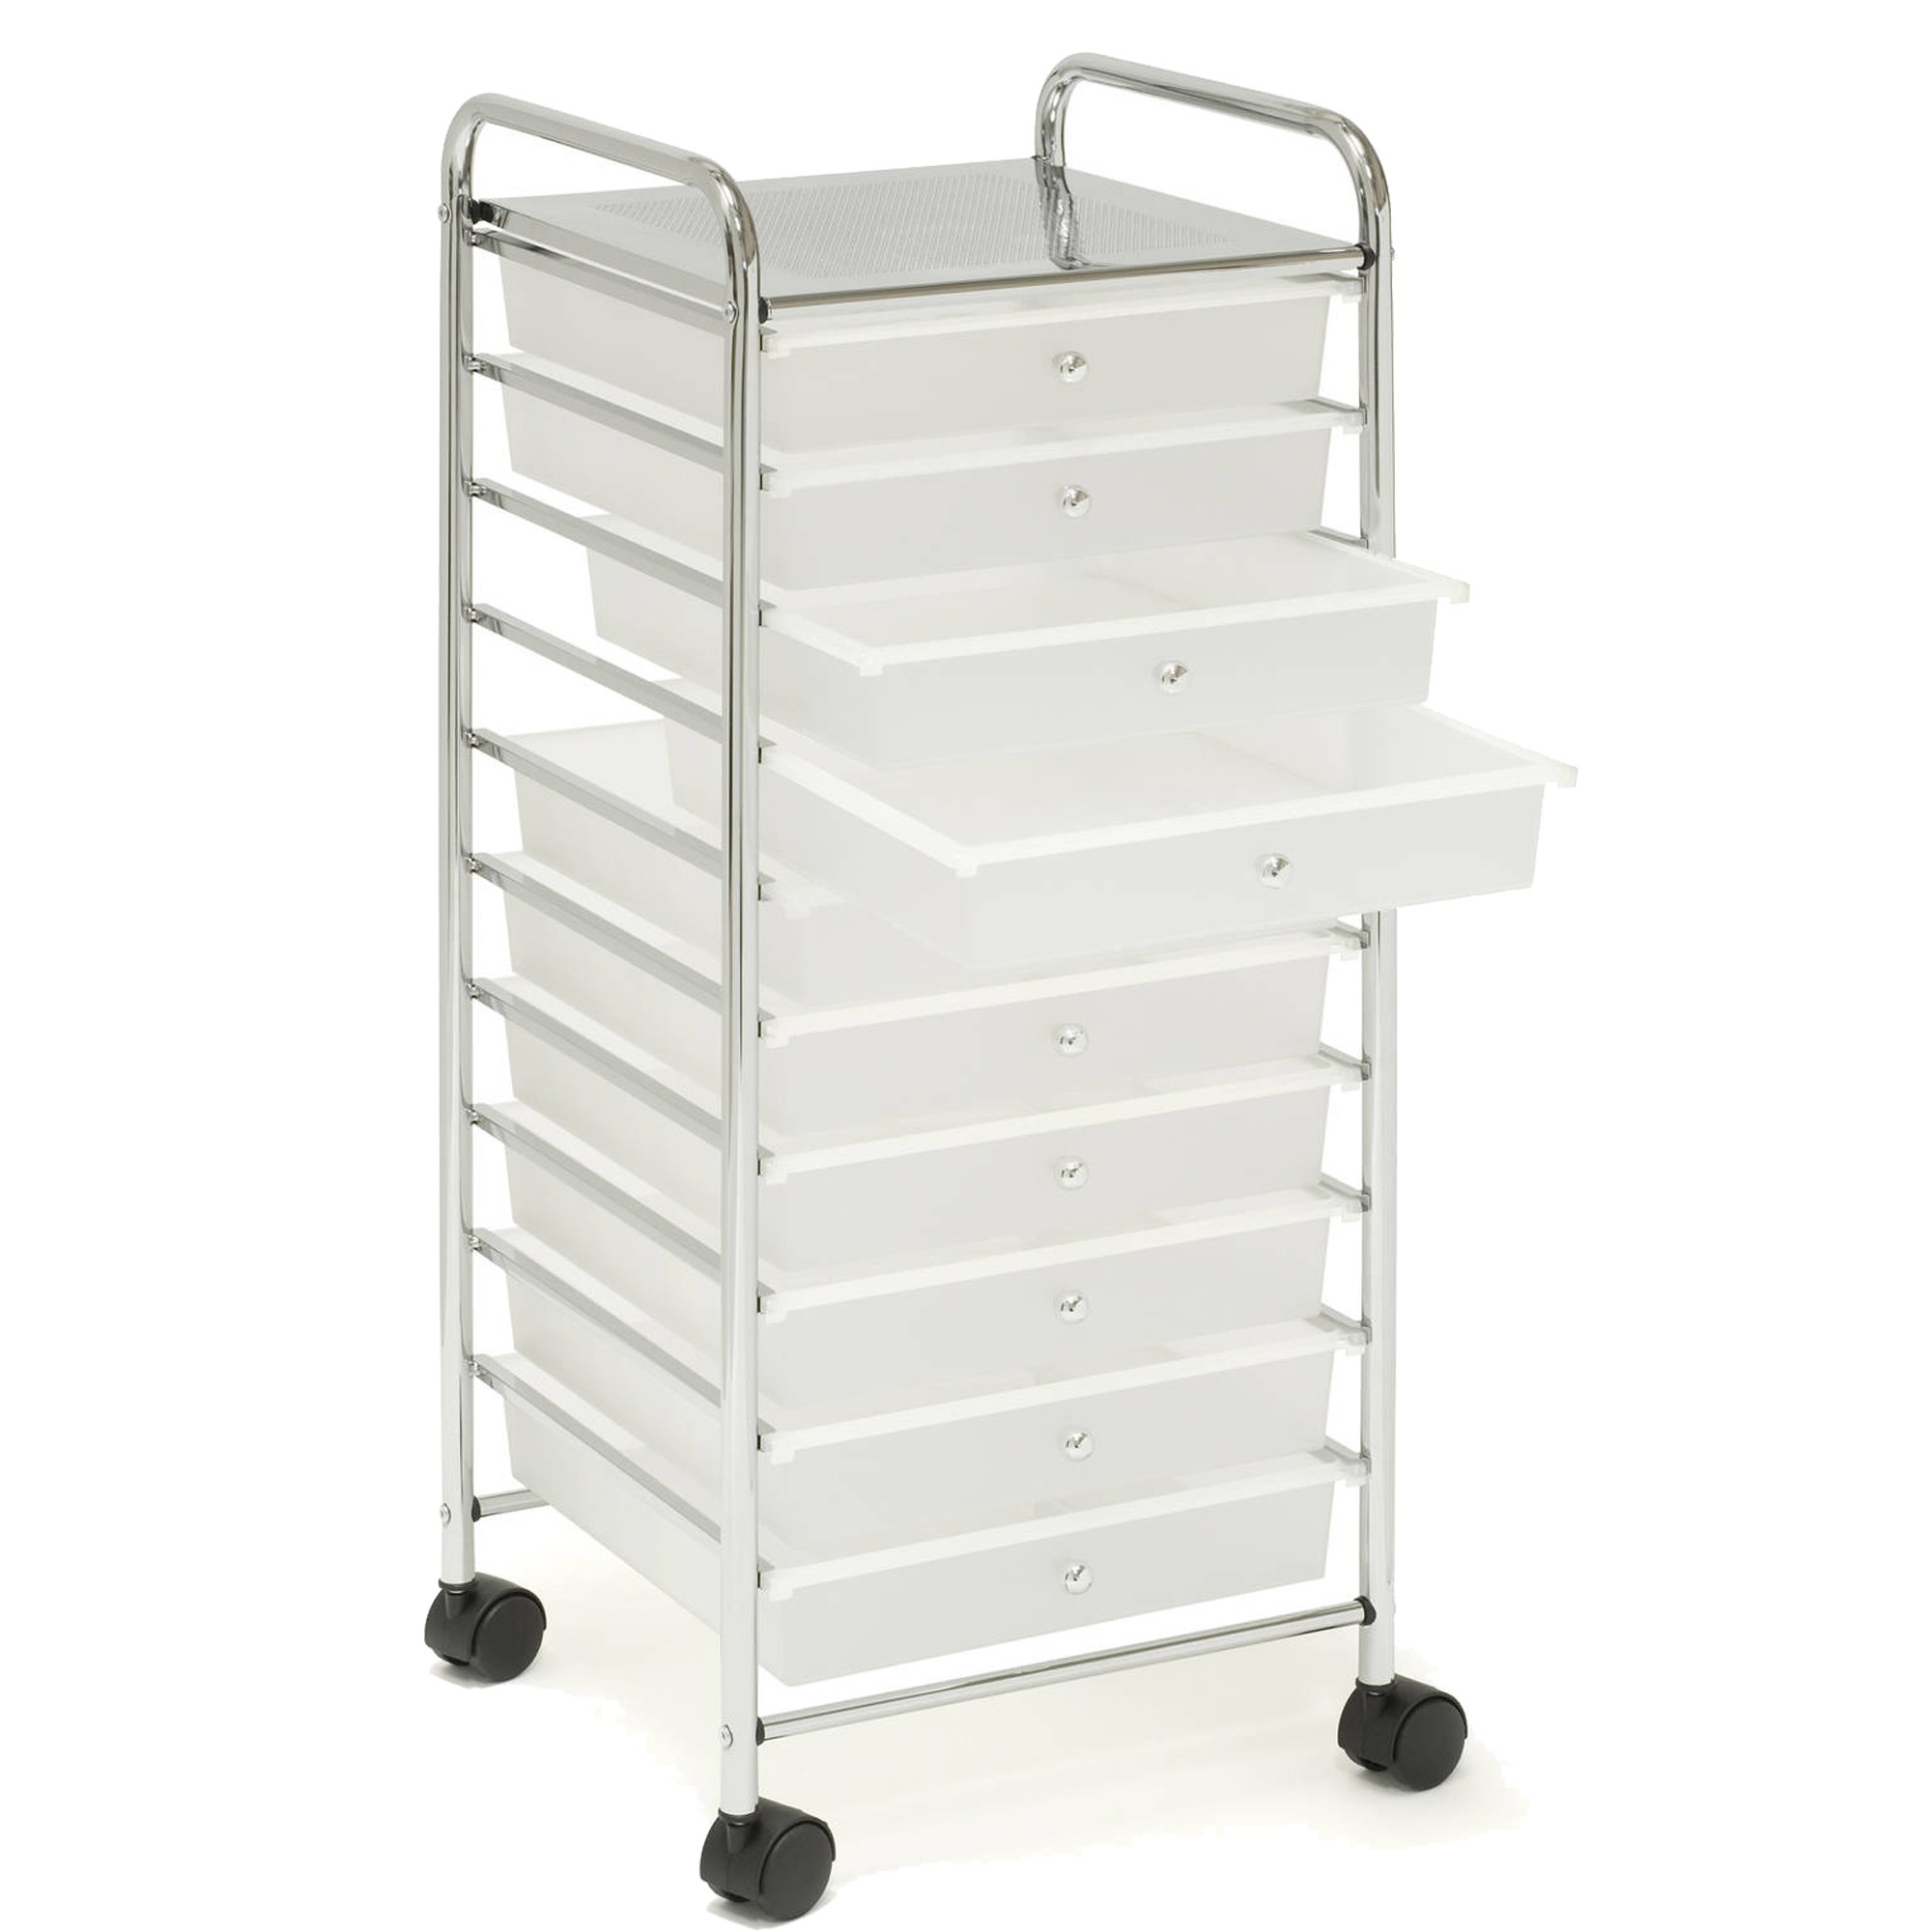 Seville Classics Large 10-Drawer Storage Organizer Utility Cart, Frosted White